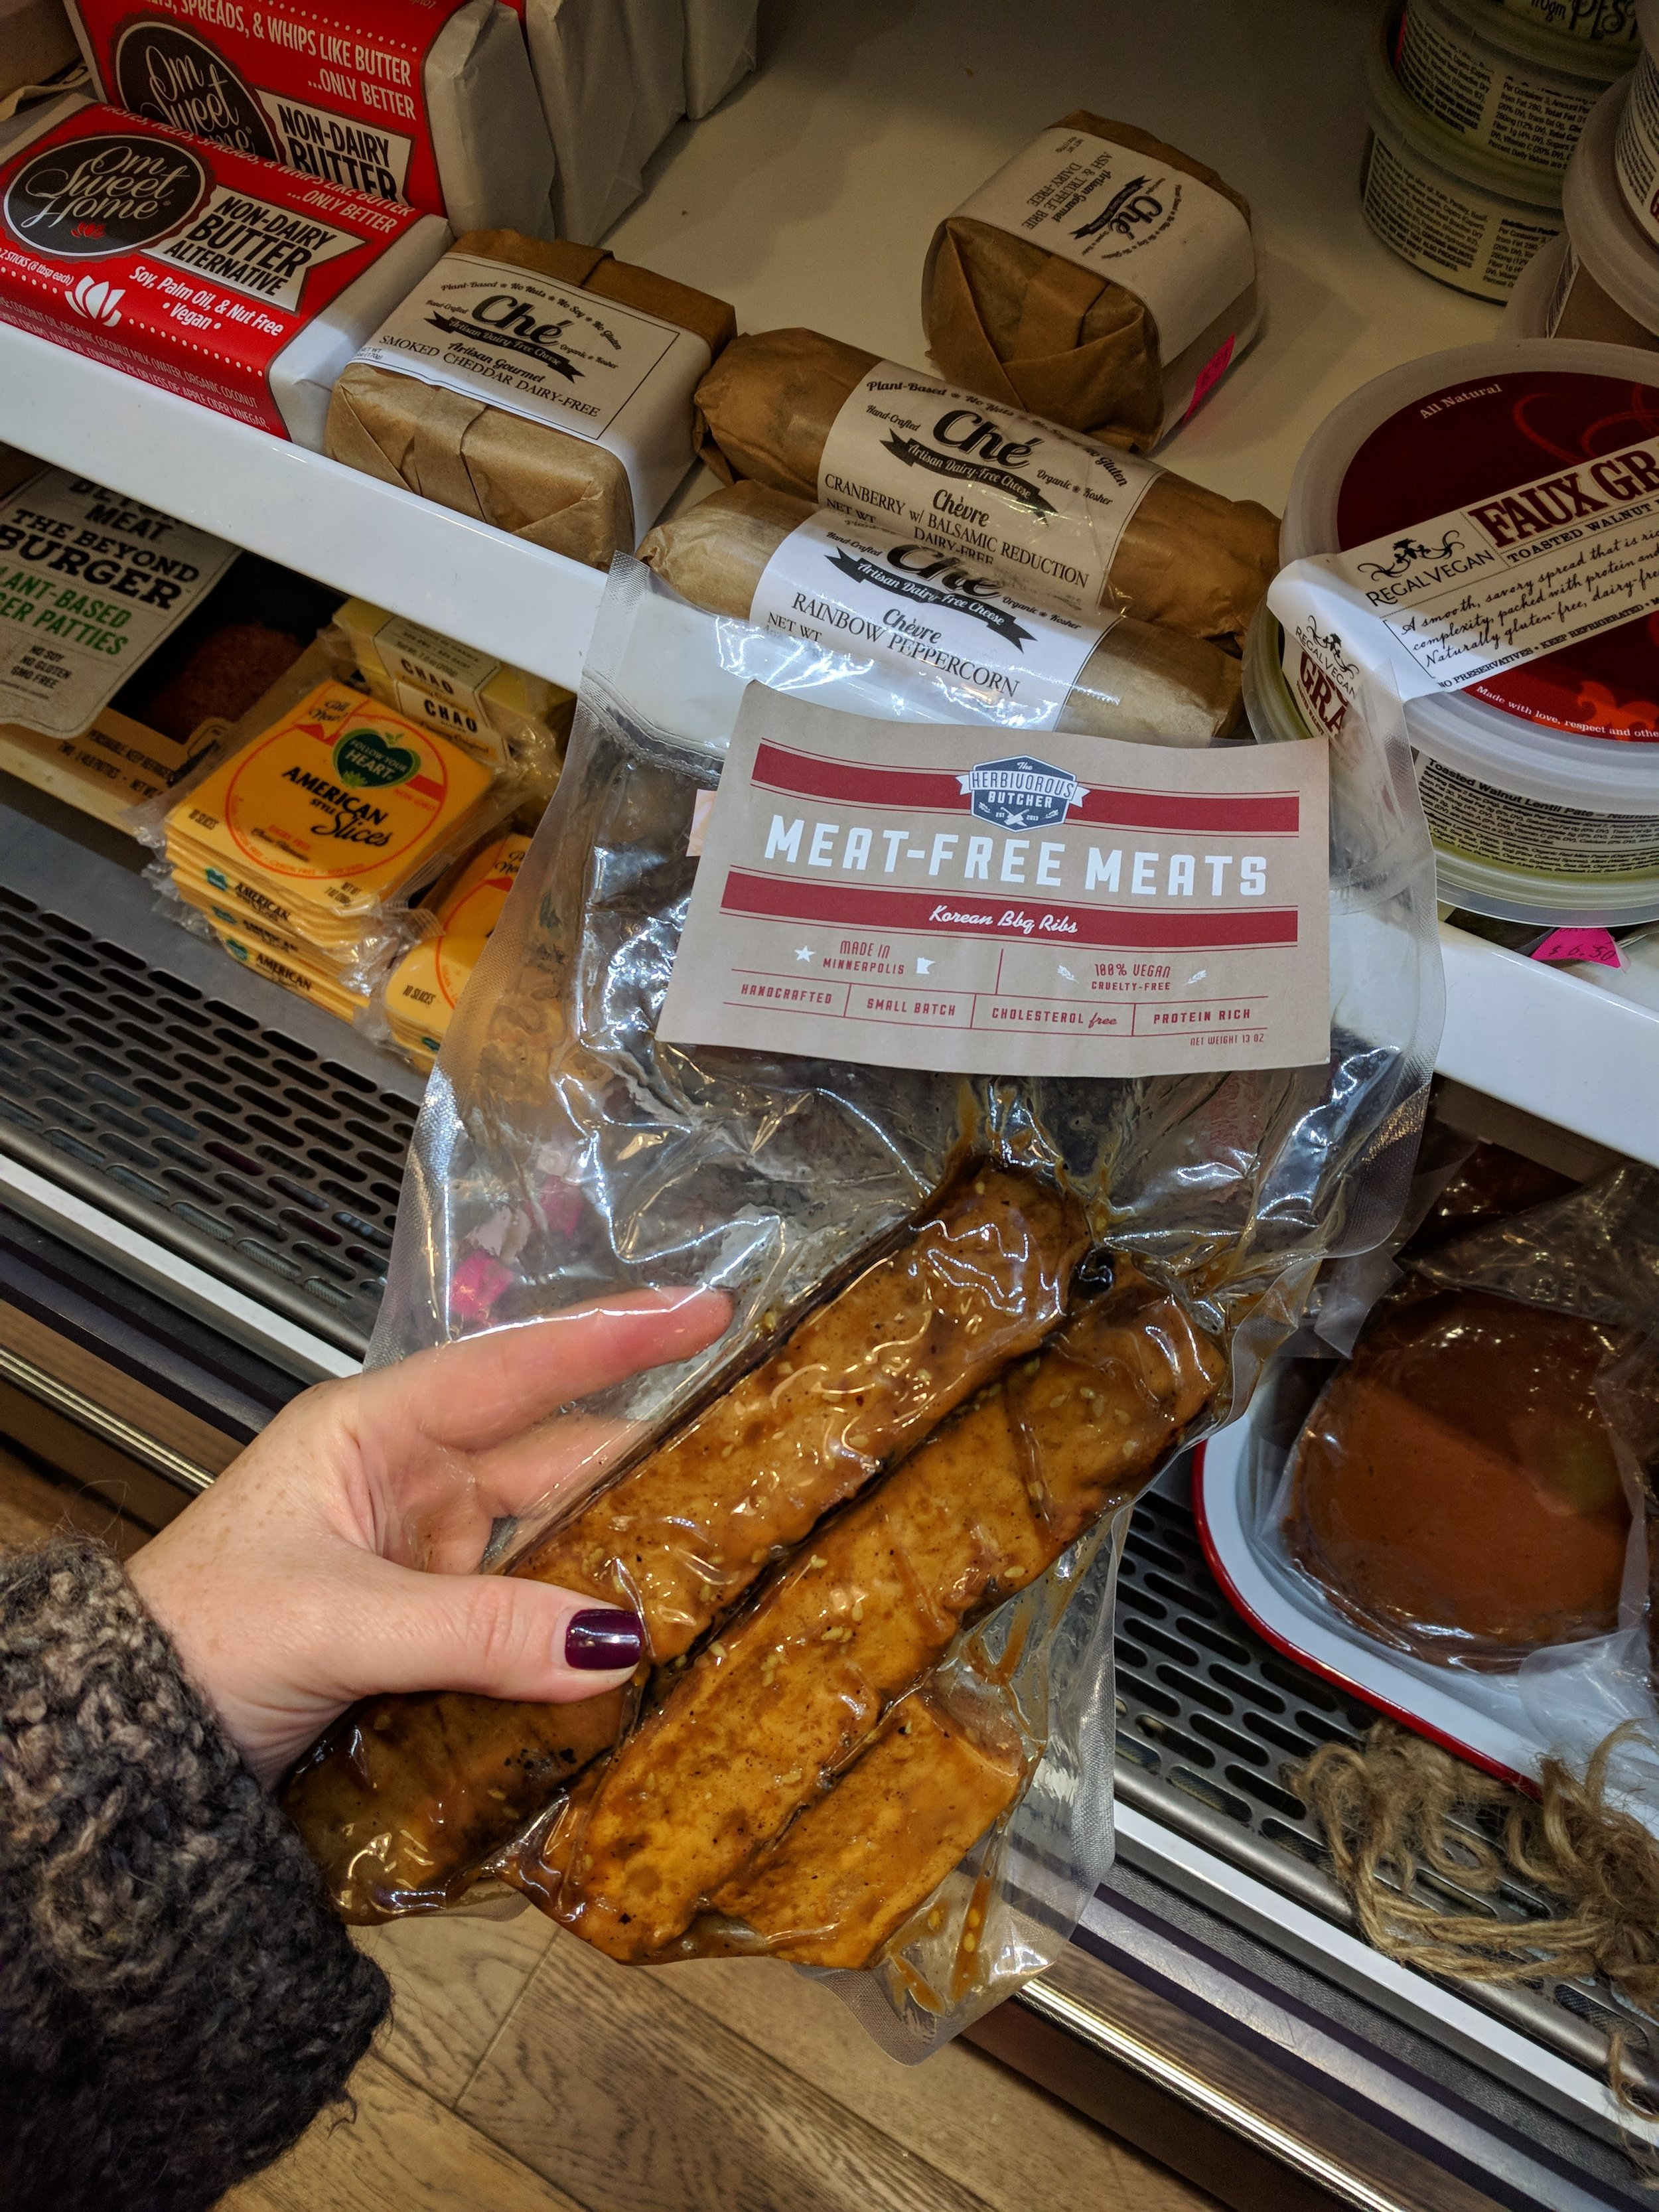 Orchard Grocer, reppin' the vegan meats that I don't splurge on, sheesh